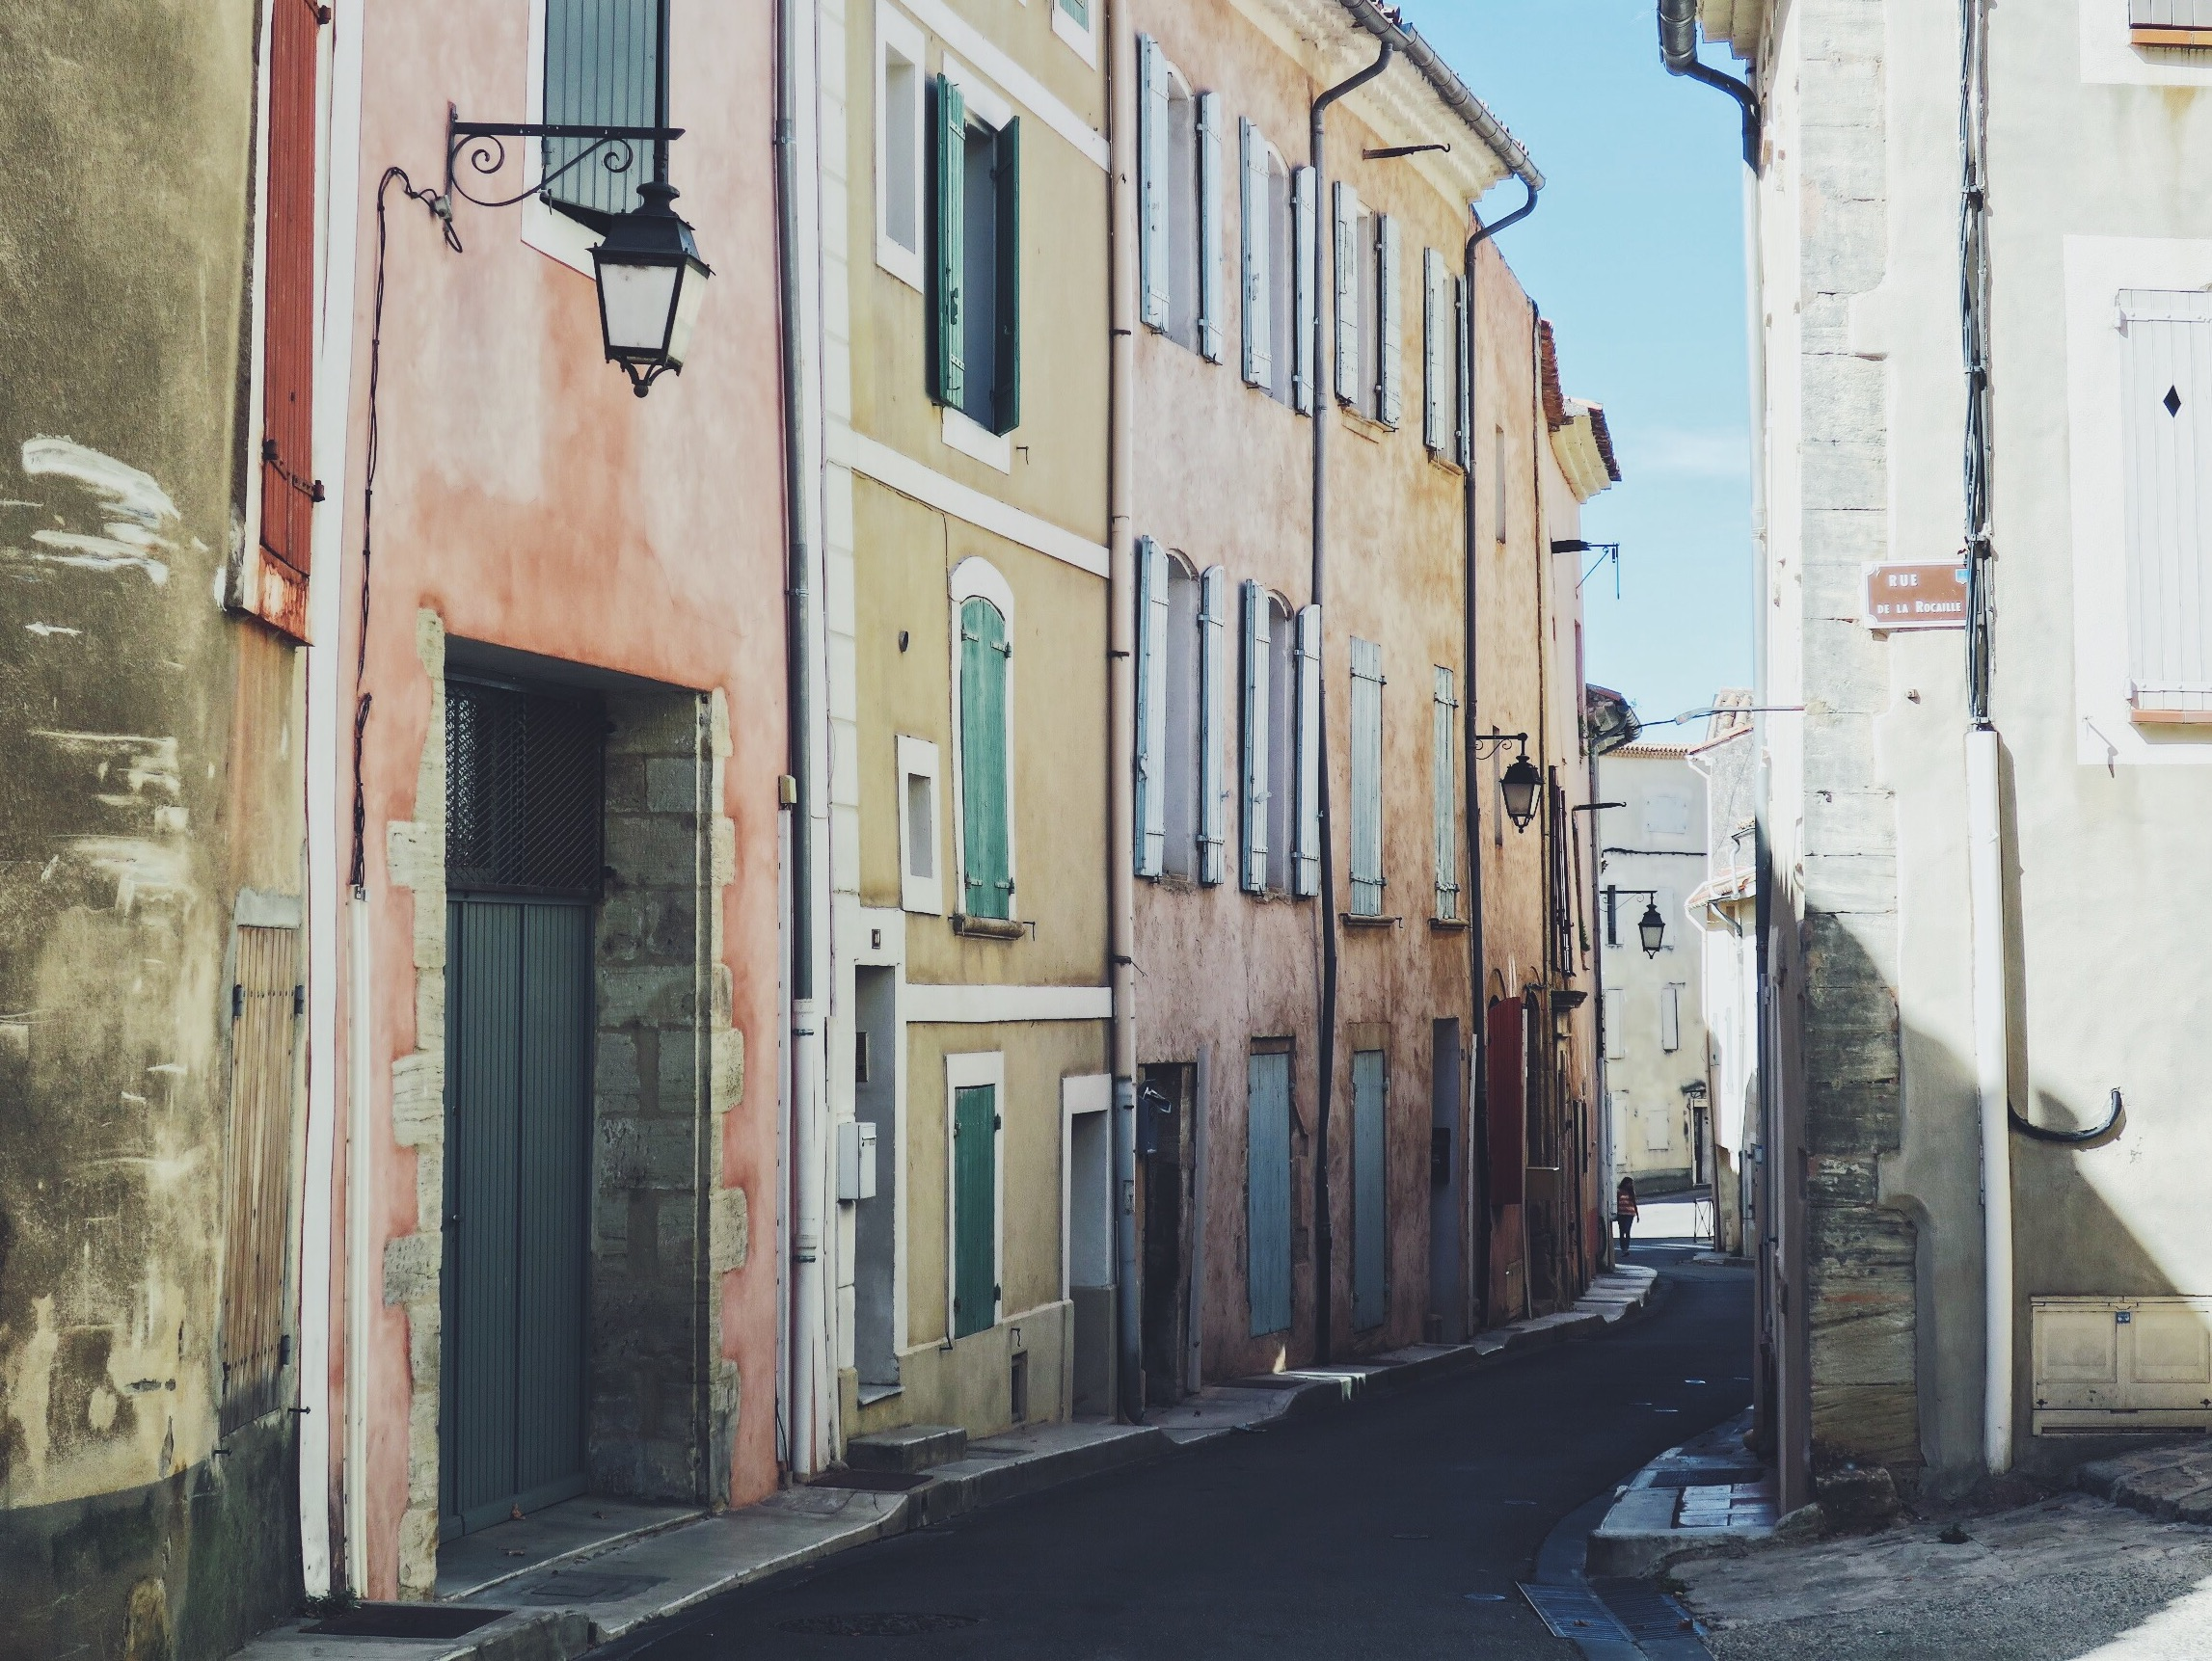 A picturesque street in Bédoin, a small village close to our Airbnb